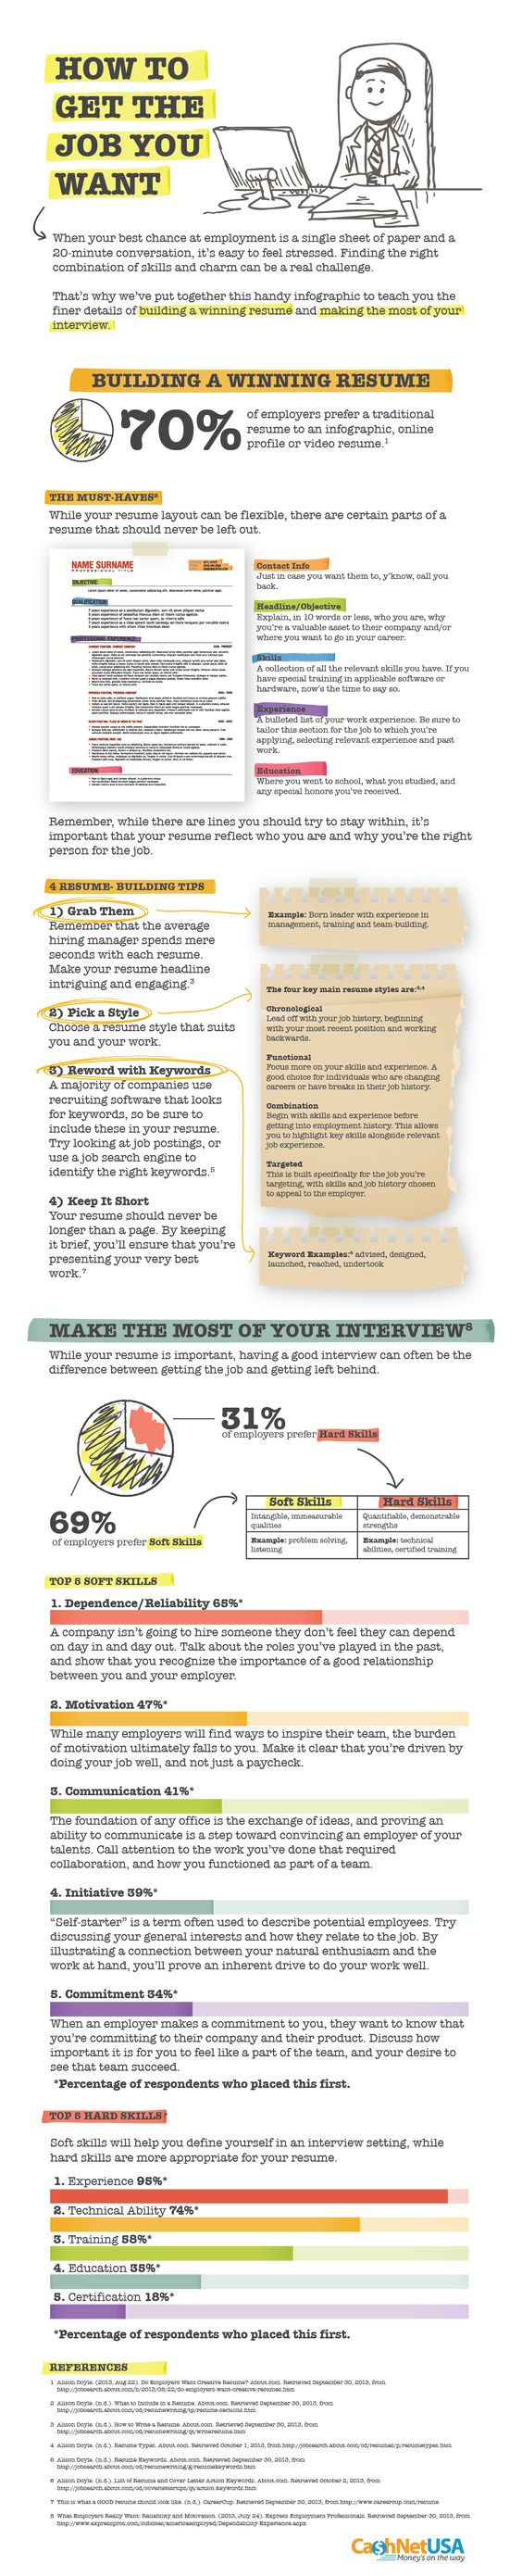 how to get the job you dreamt infographic interview how to get the job you dreamt infographic